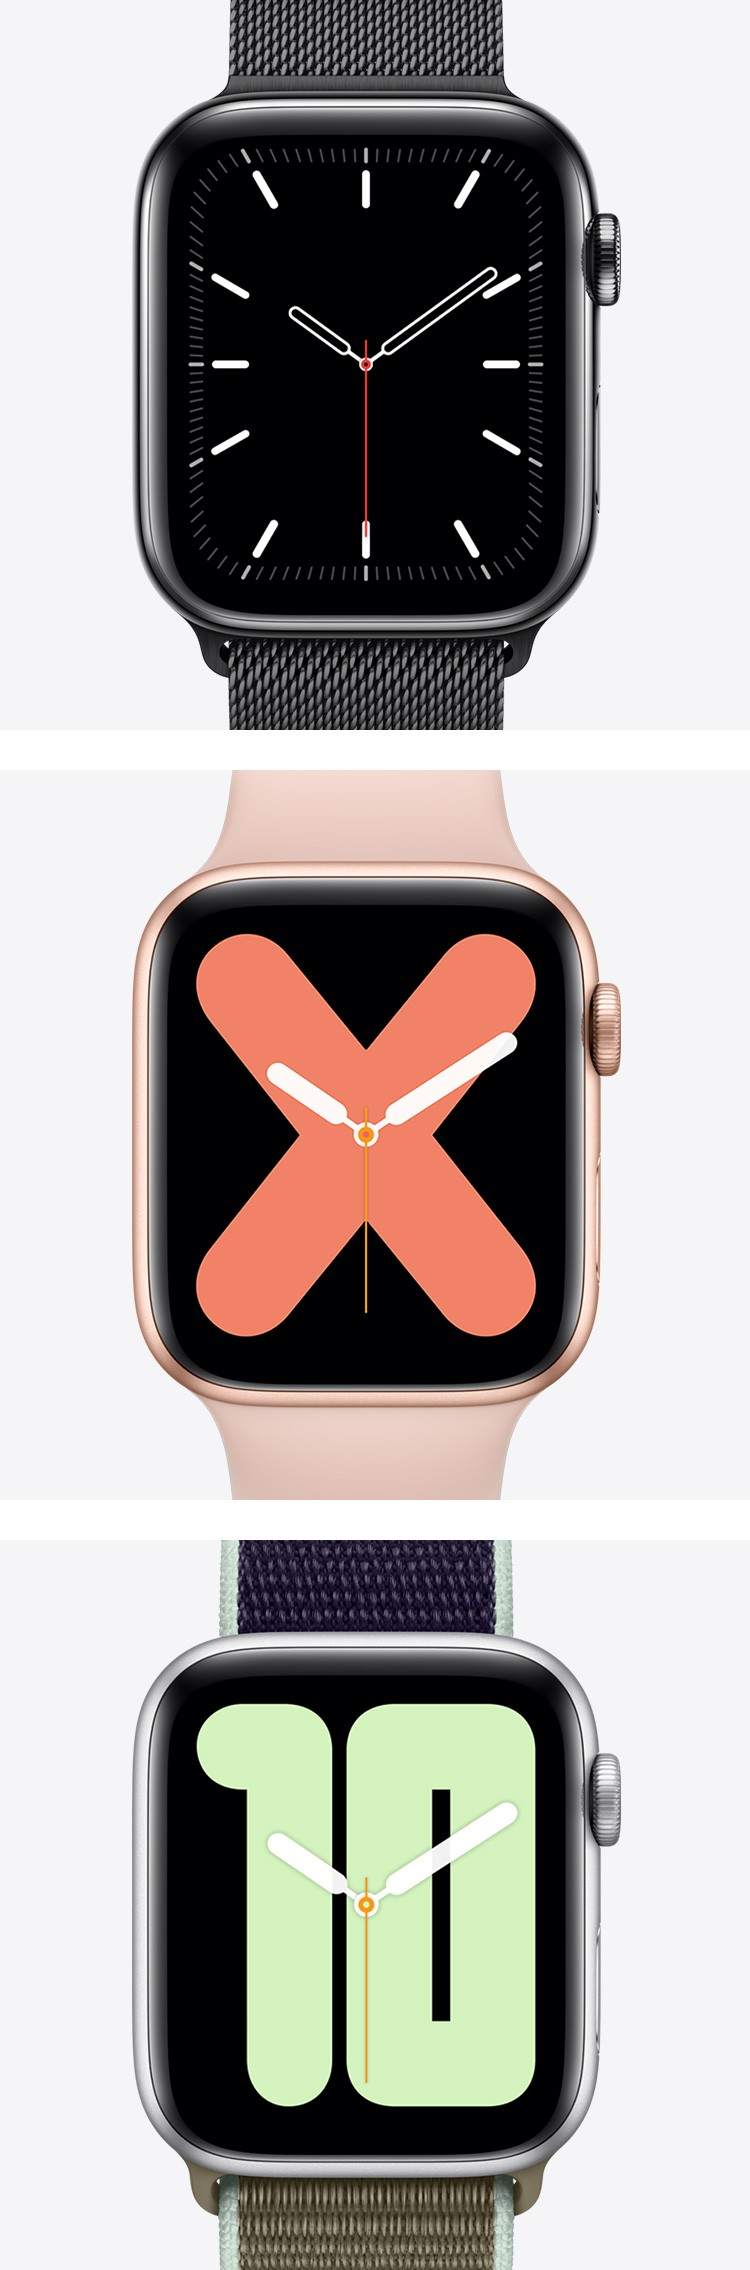 Apple watch 5 文字盤の種類